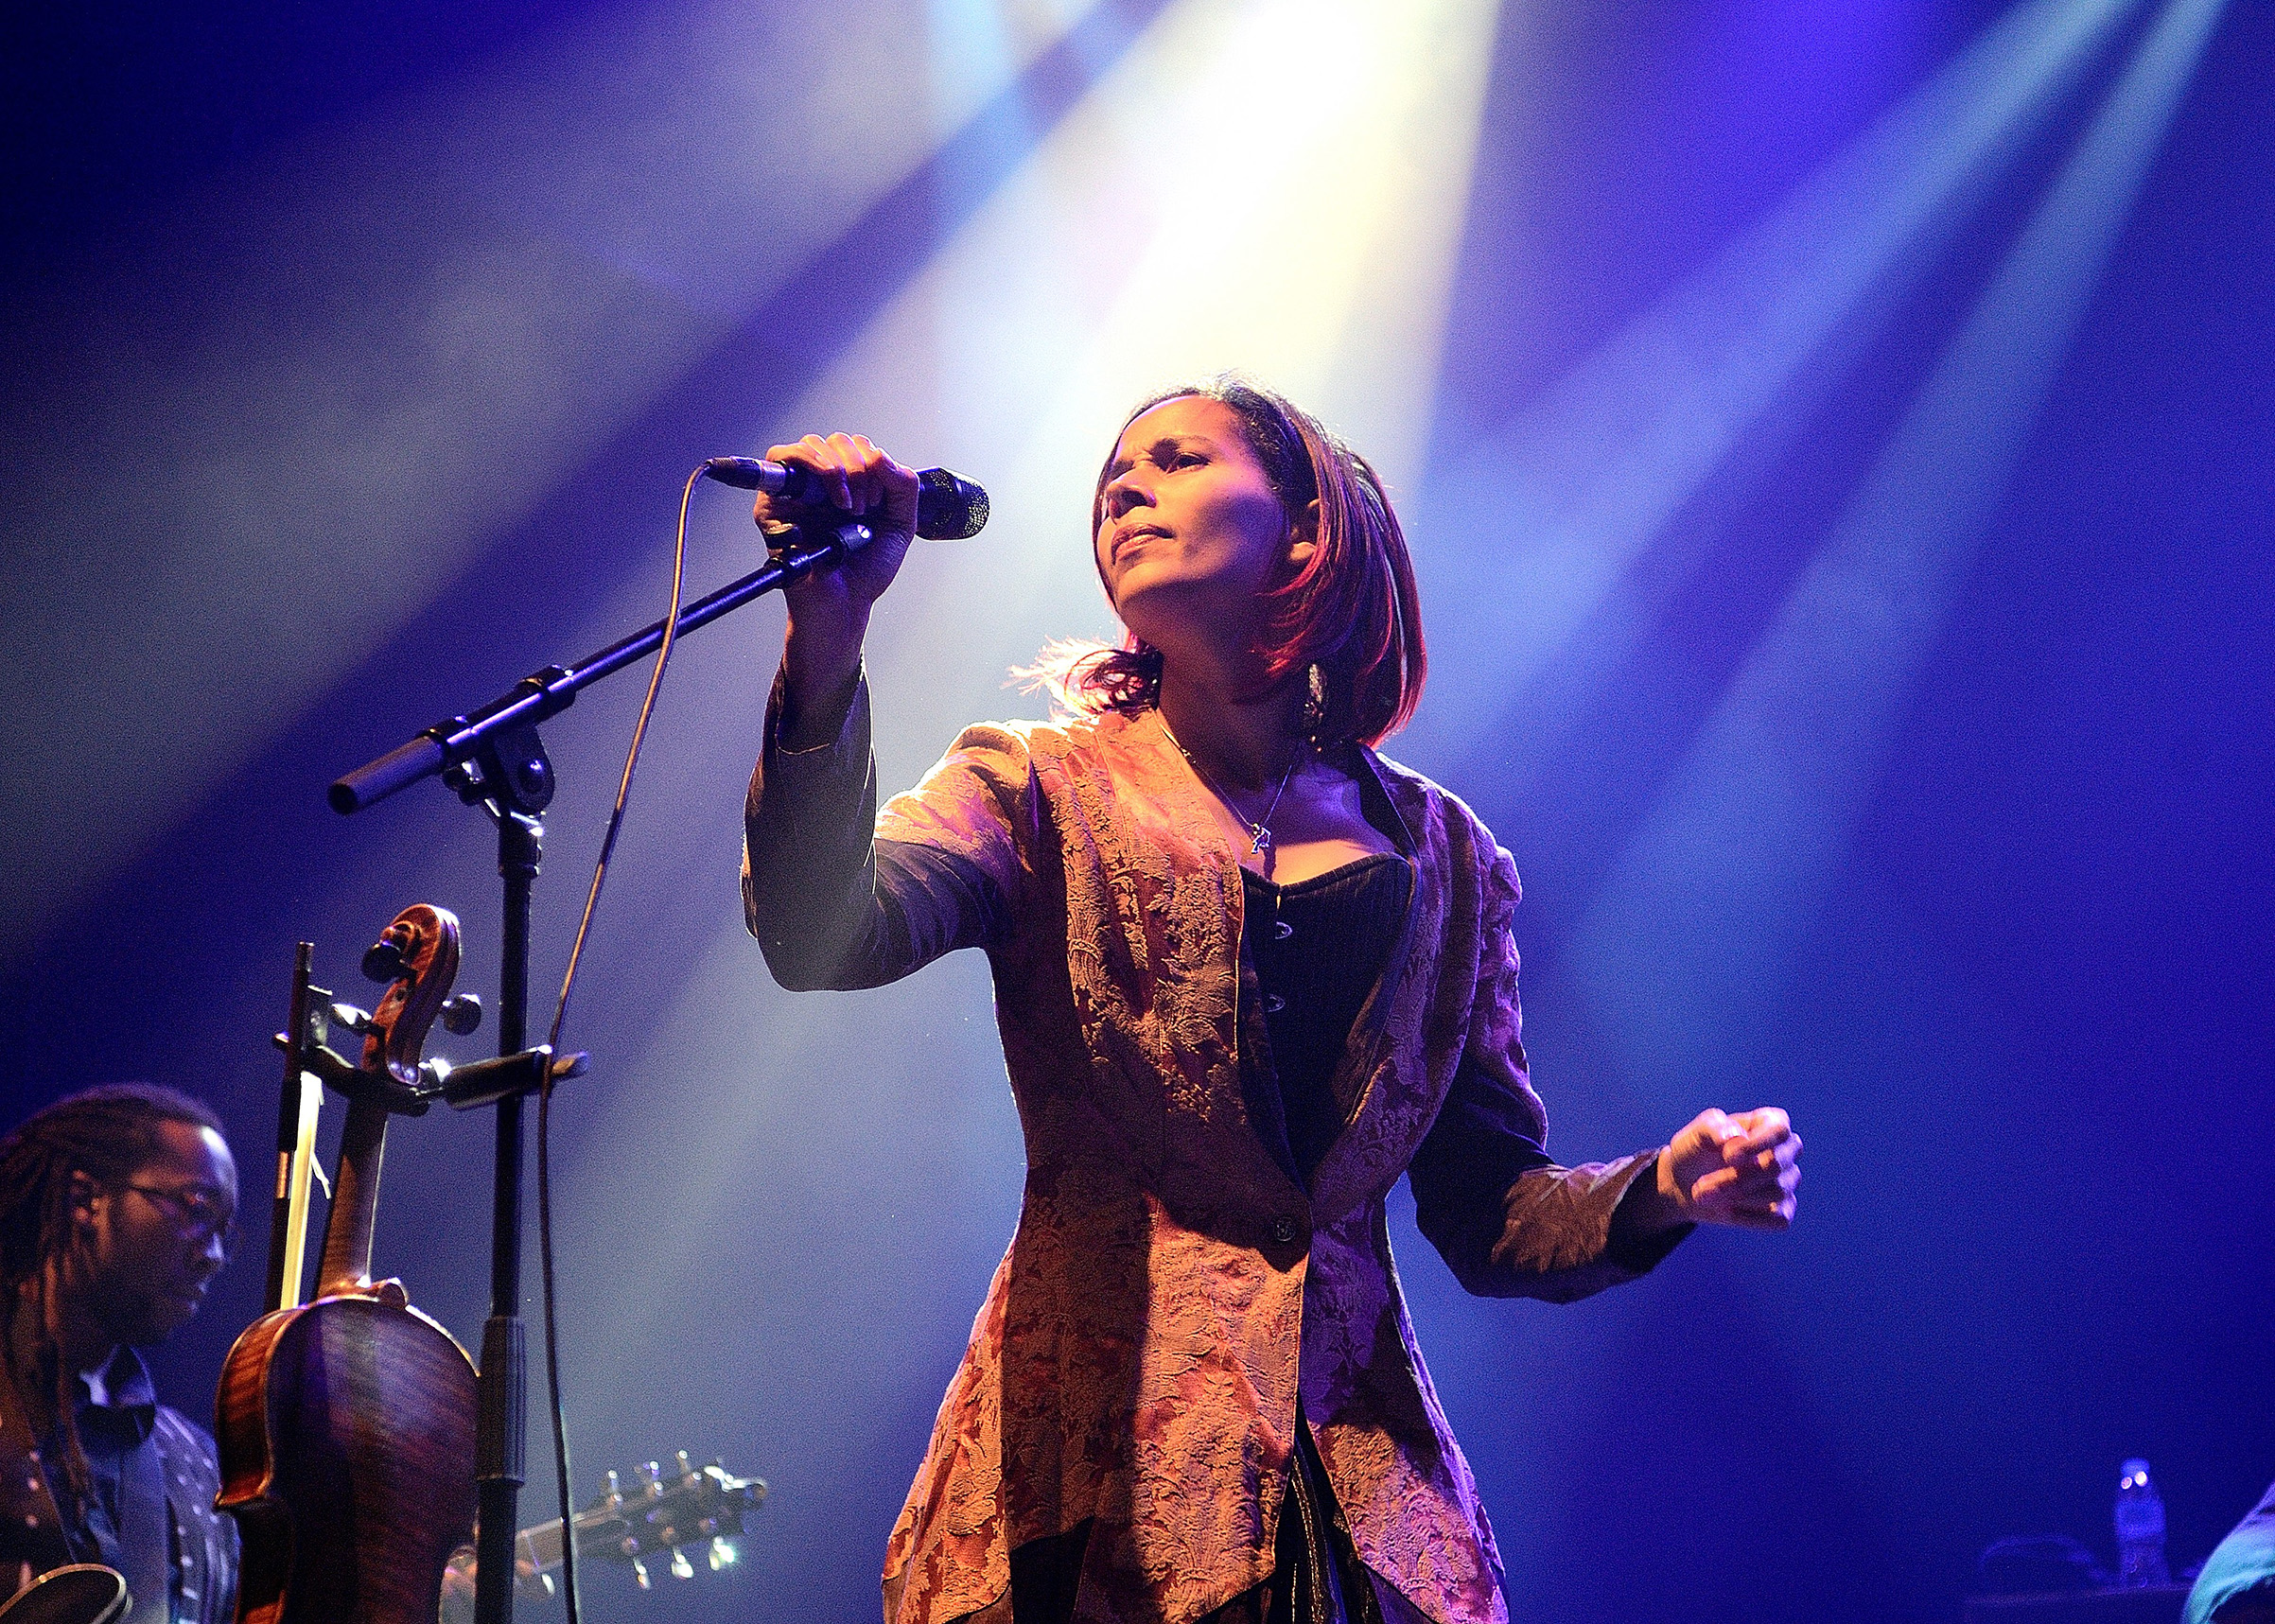 Rhiannon Giddens performs on stage at the O2 Shepherd's Bush Empire on Nov. 17, 2017.